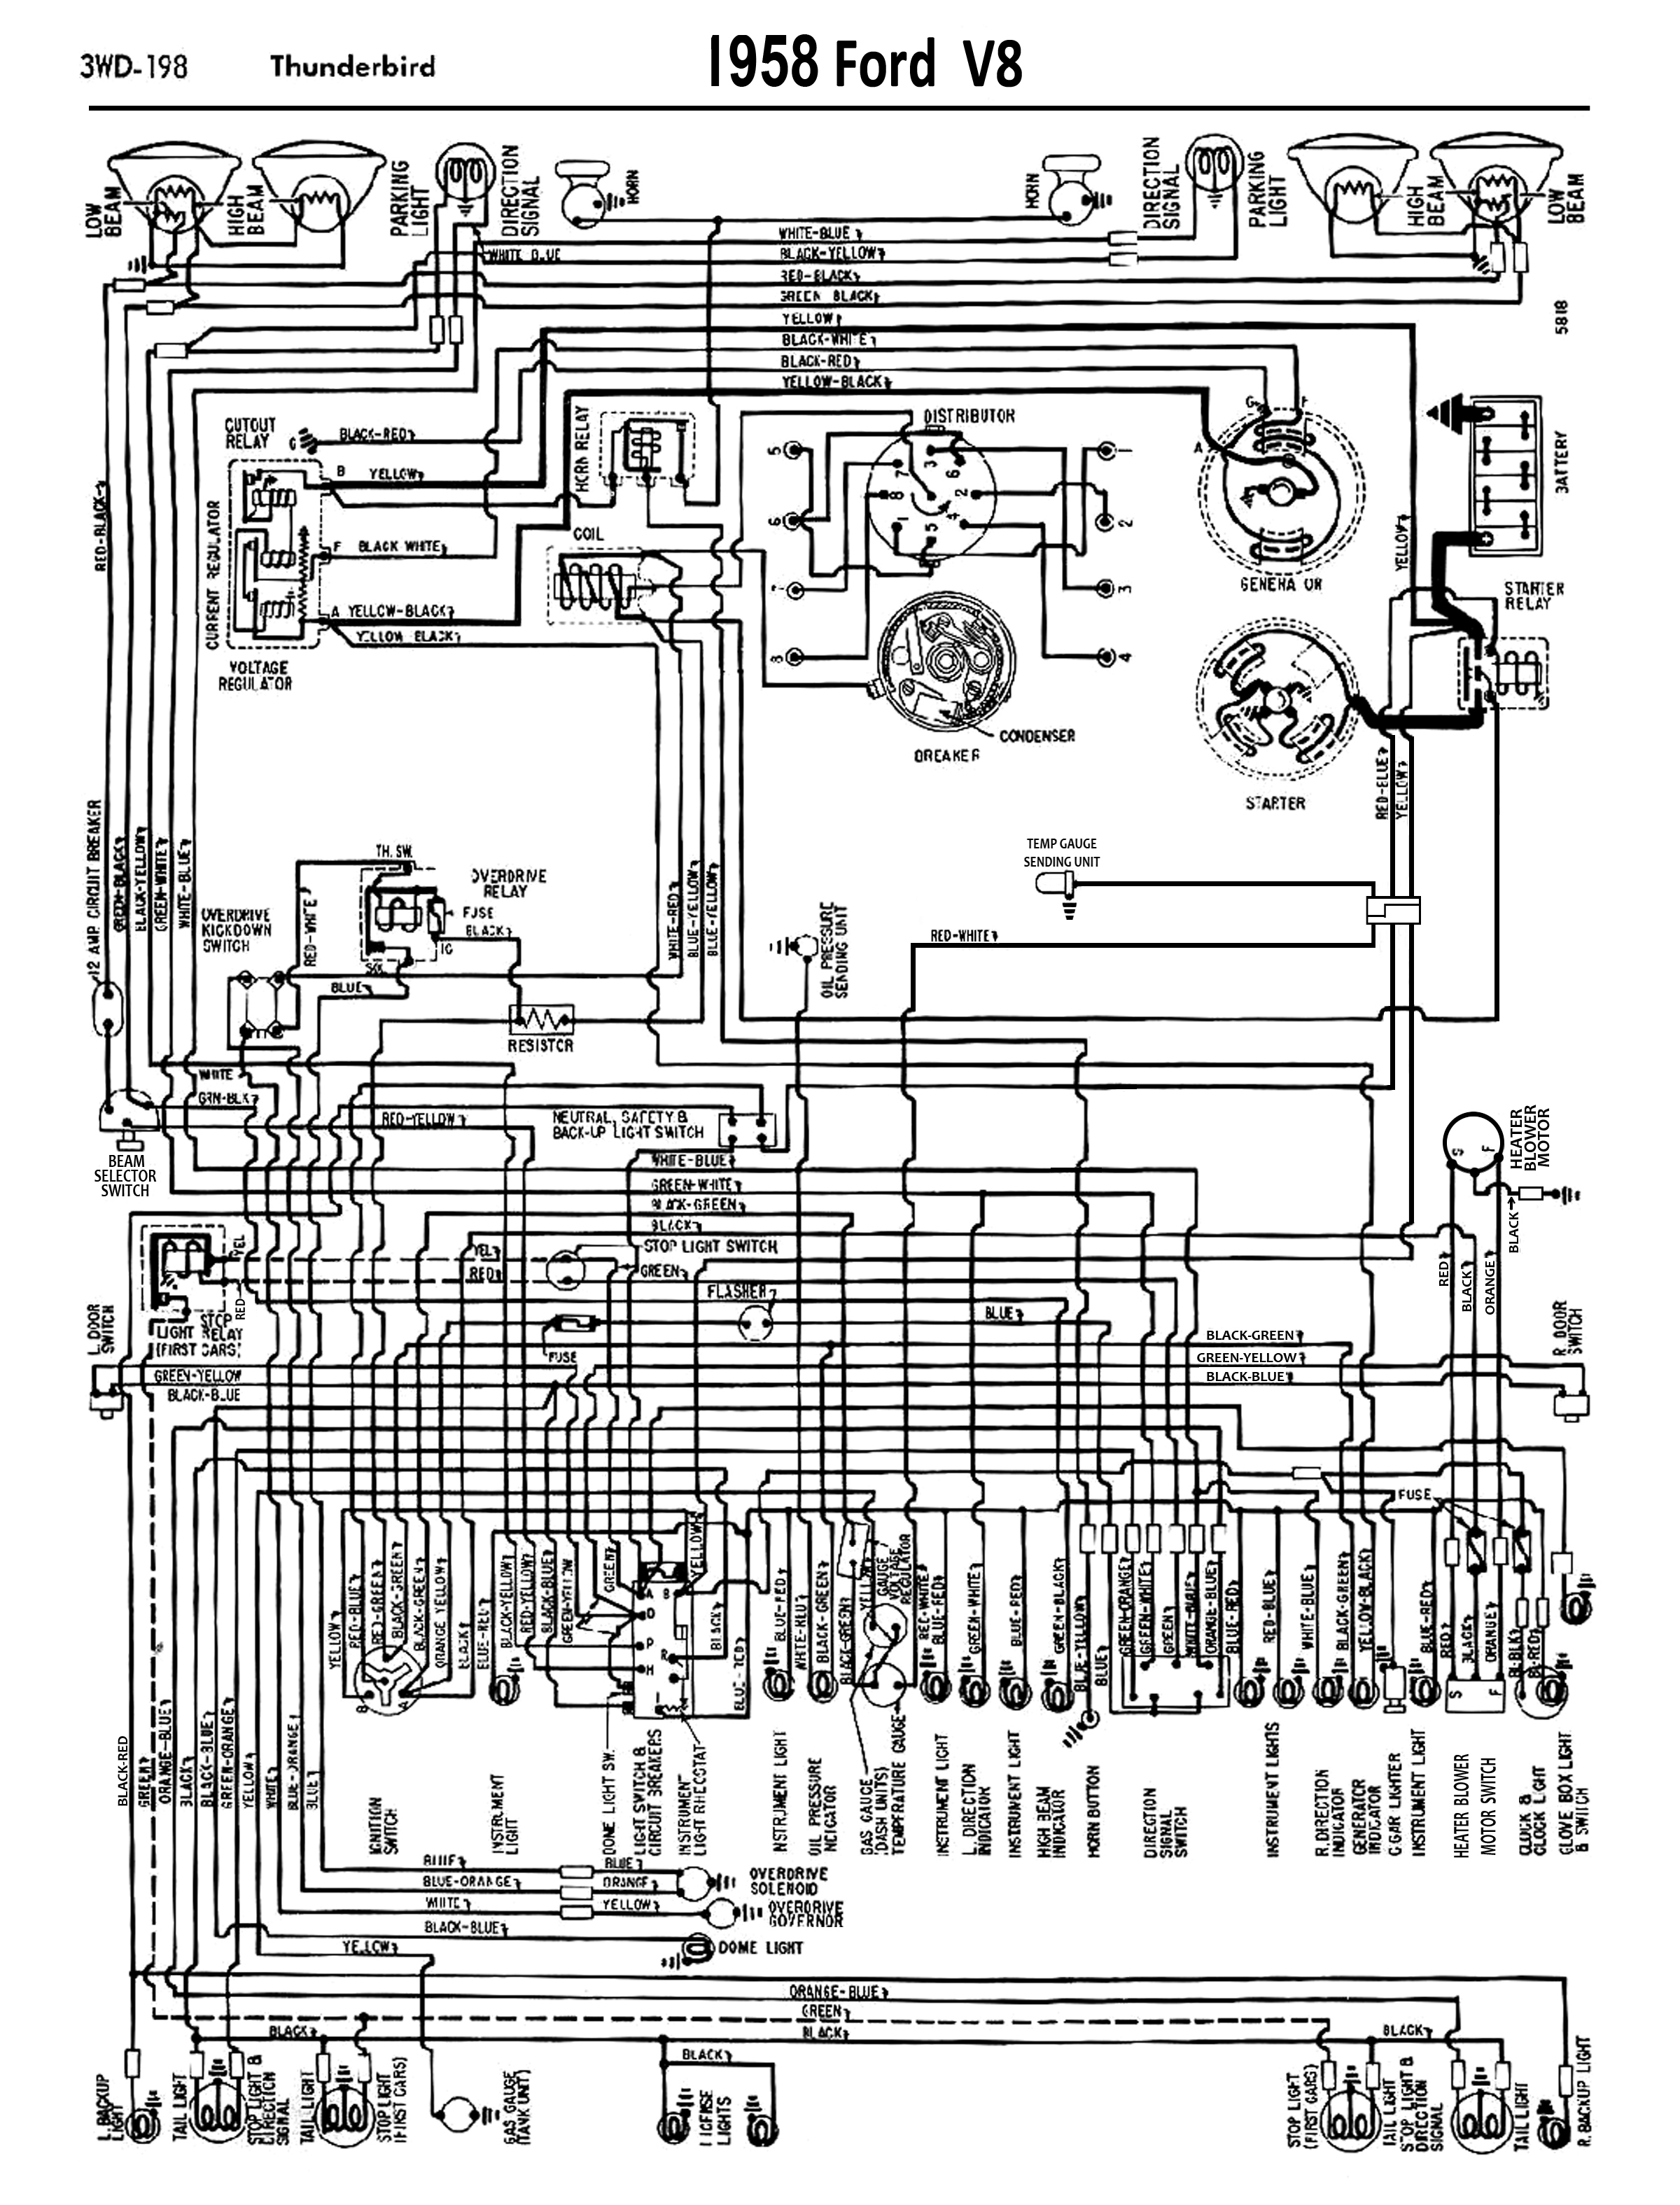 ford charging system wiring diagram trailer light module fault 58